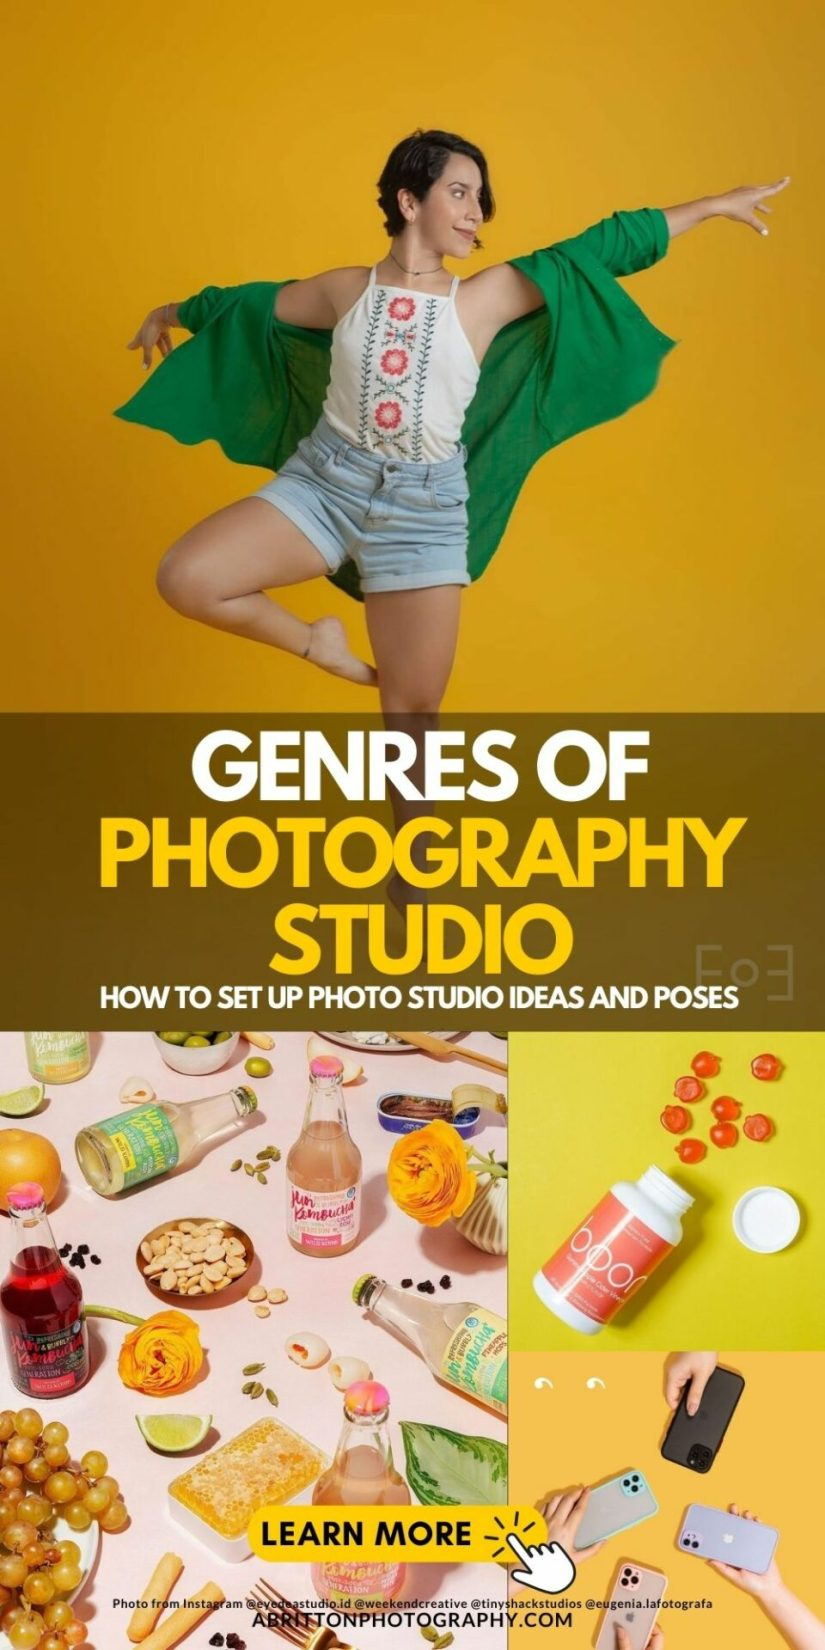 Genre of Home Photography Studio Ideas and Poses